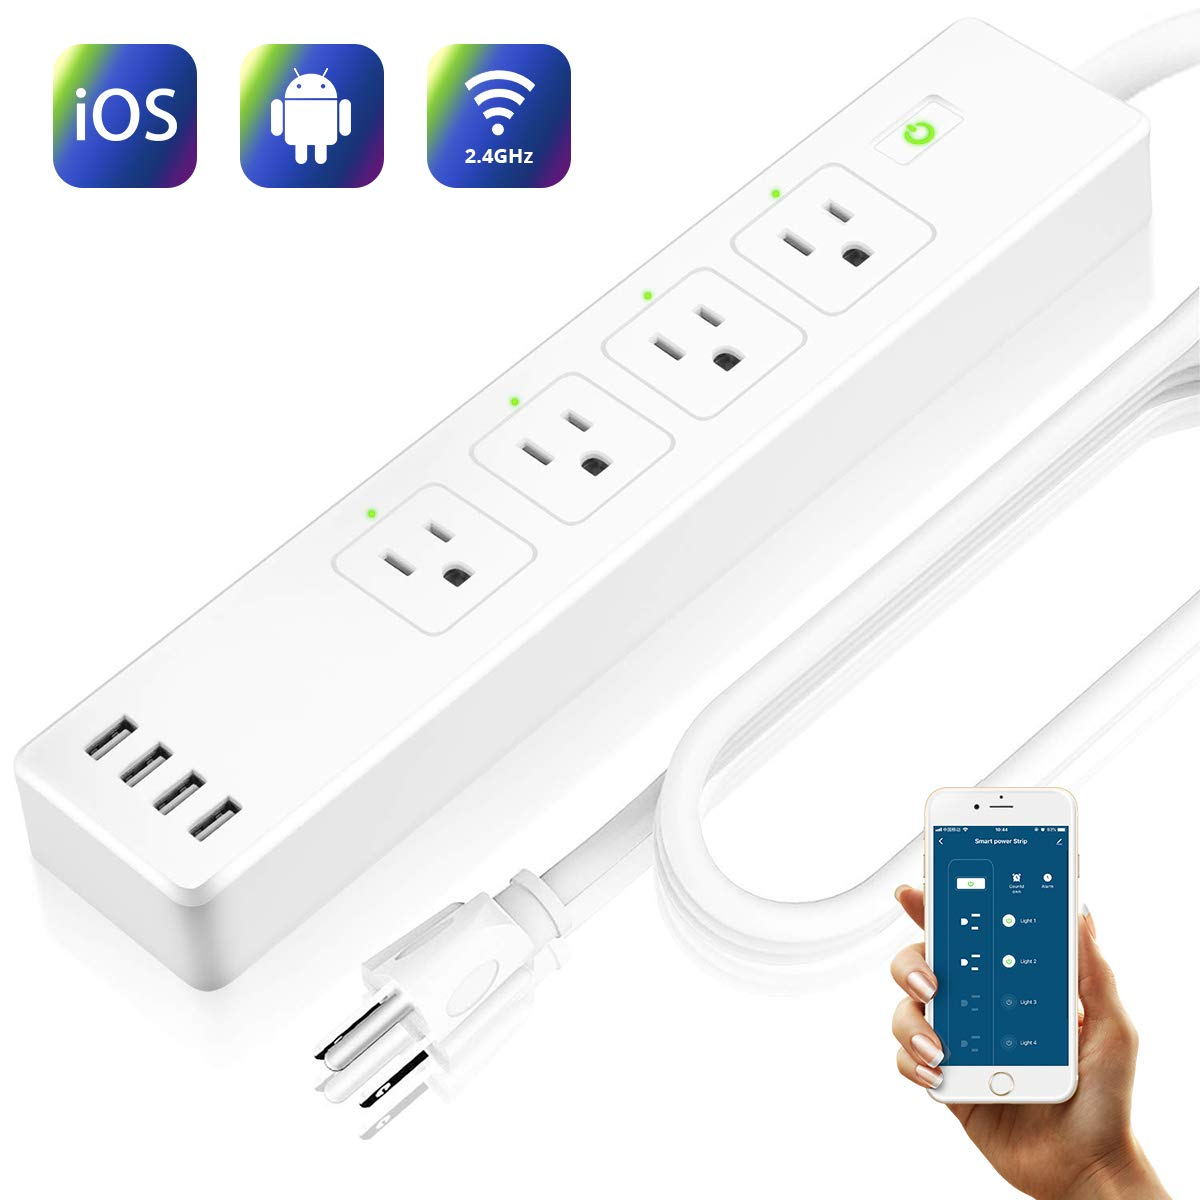 LARKKEY Smart Power Strip WiFi Power Bar with 4 USB Charging Ports and Smart AC Plugs, Compatible with Alexa,Google Home and IFTTT, Surge Protector 2.4GHz, FCC Listed